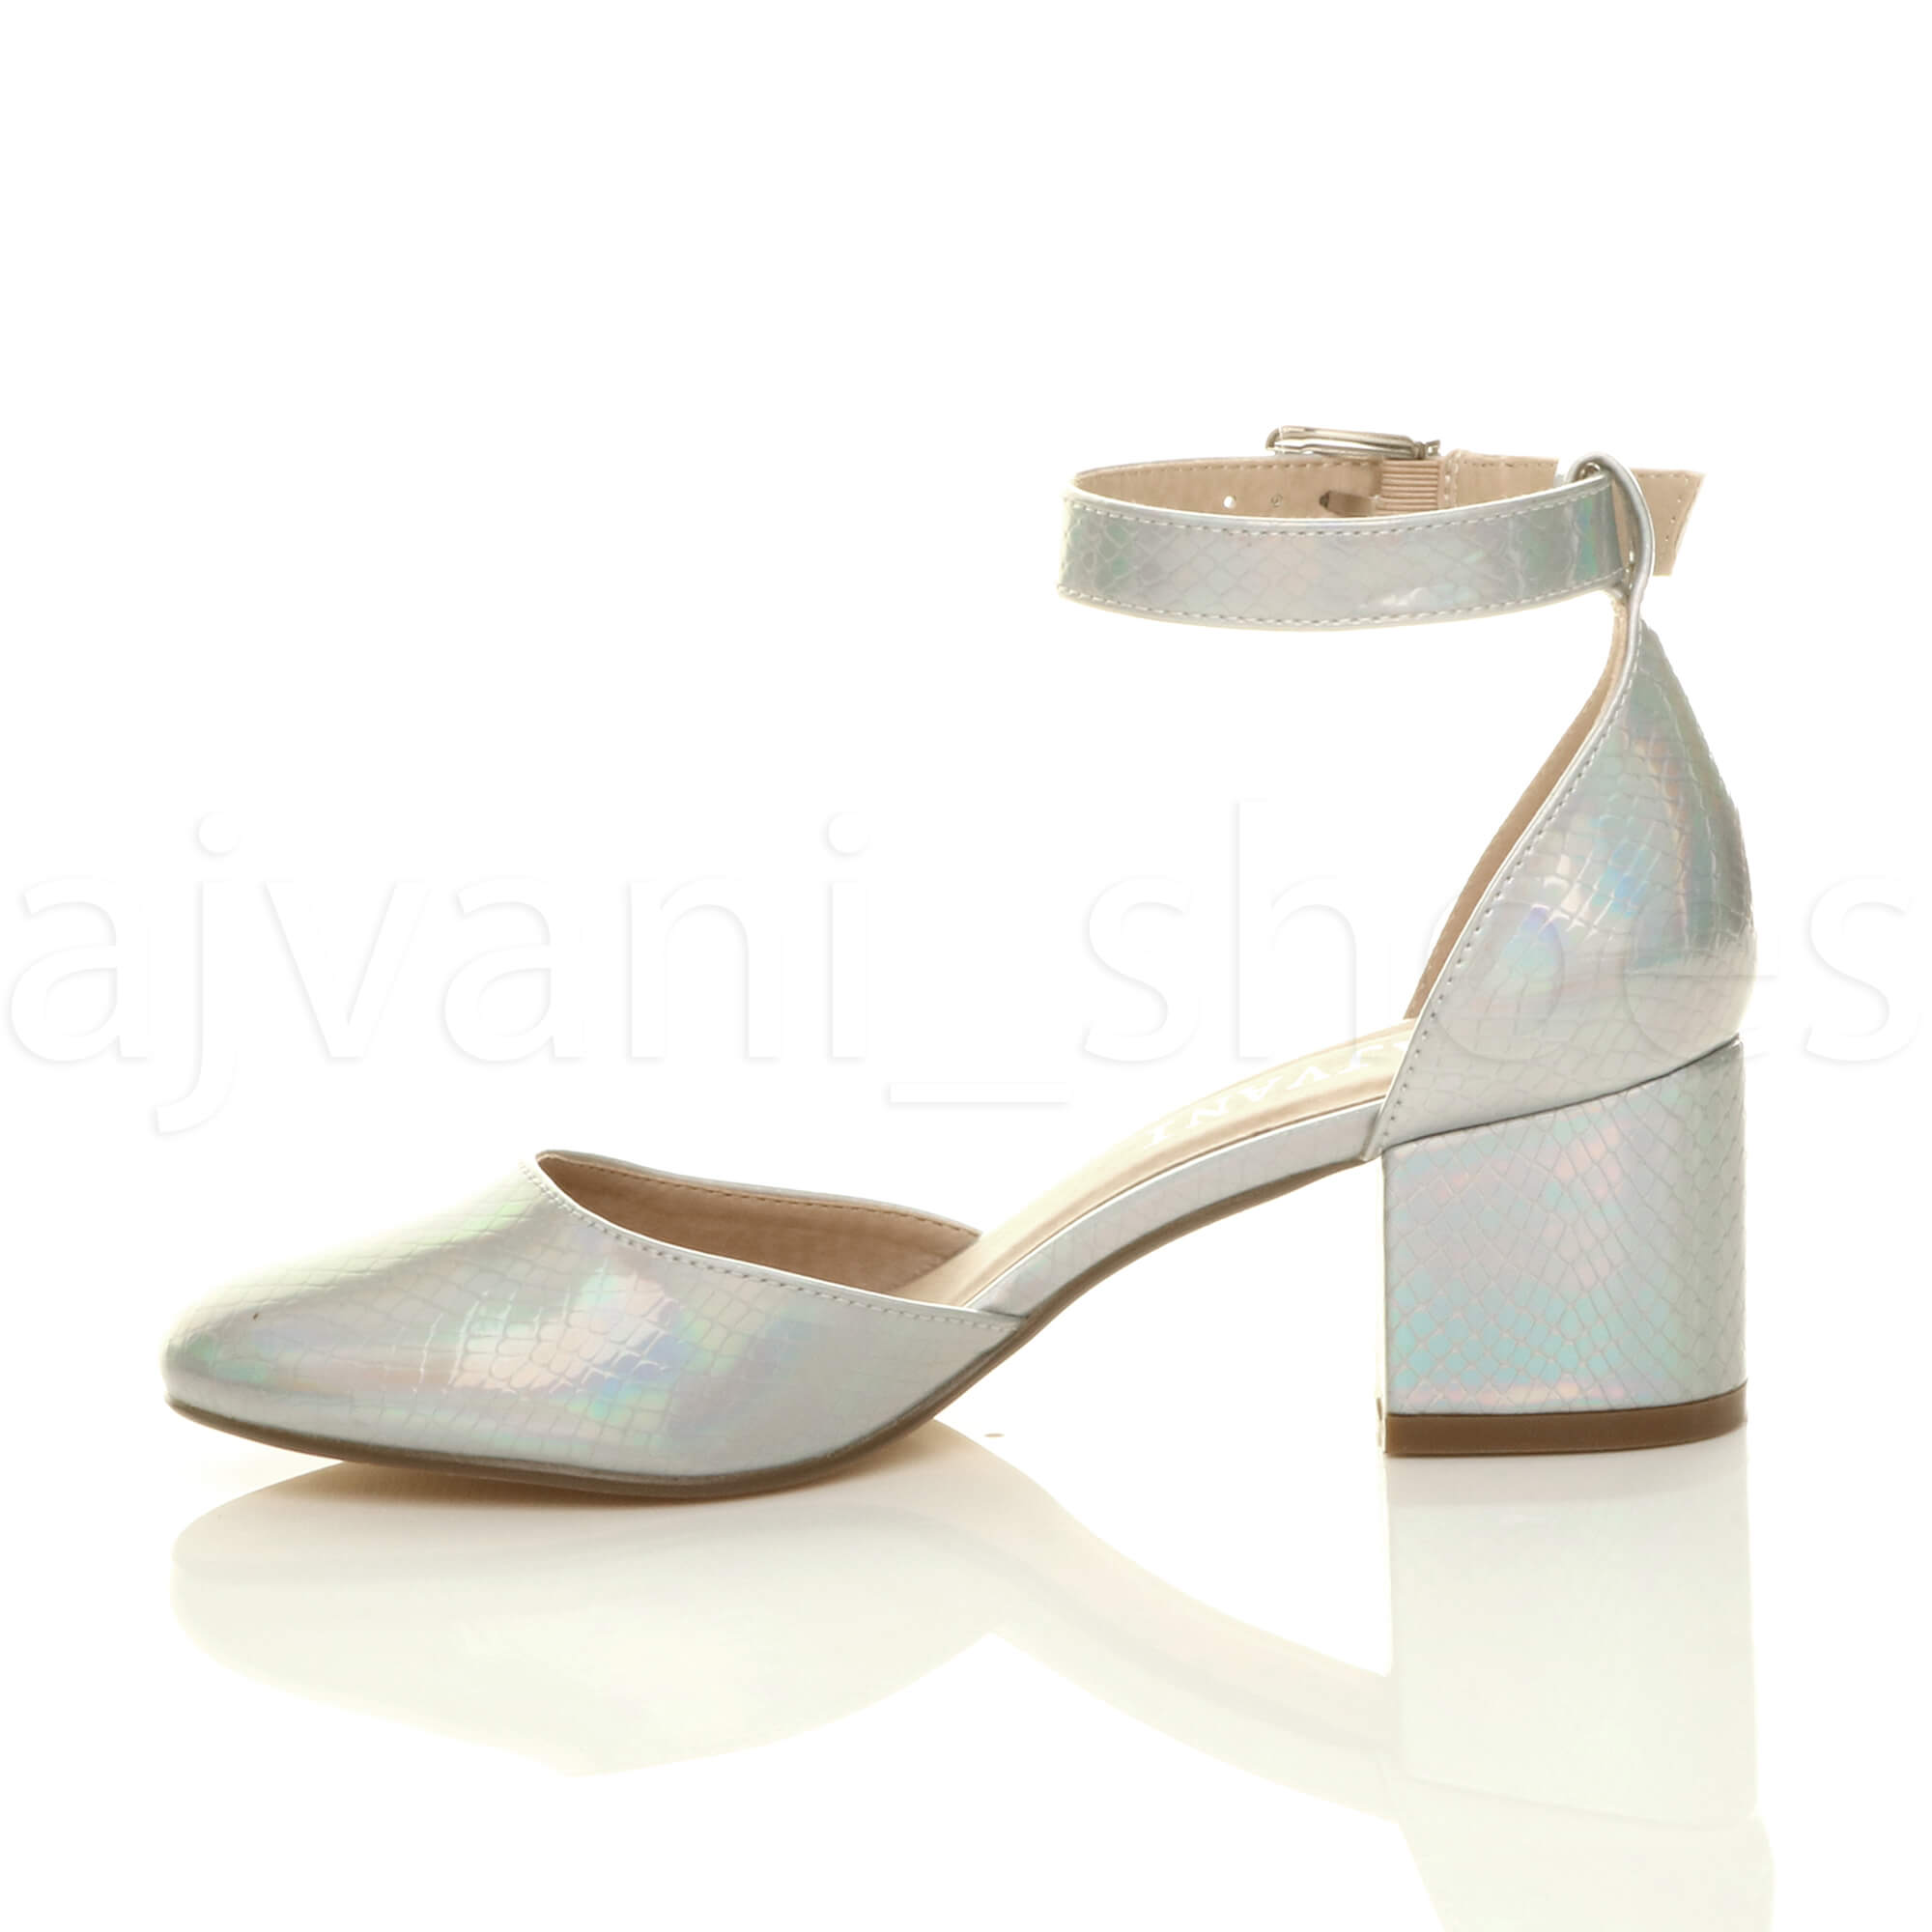 WOMENS-LADIES-LOW-MID-BLOCK-HEEL-ANKLE-STRAP-MARY-JANE-COURT-SHOES-SANDALS-SIZE thumbnail 164